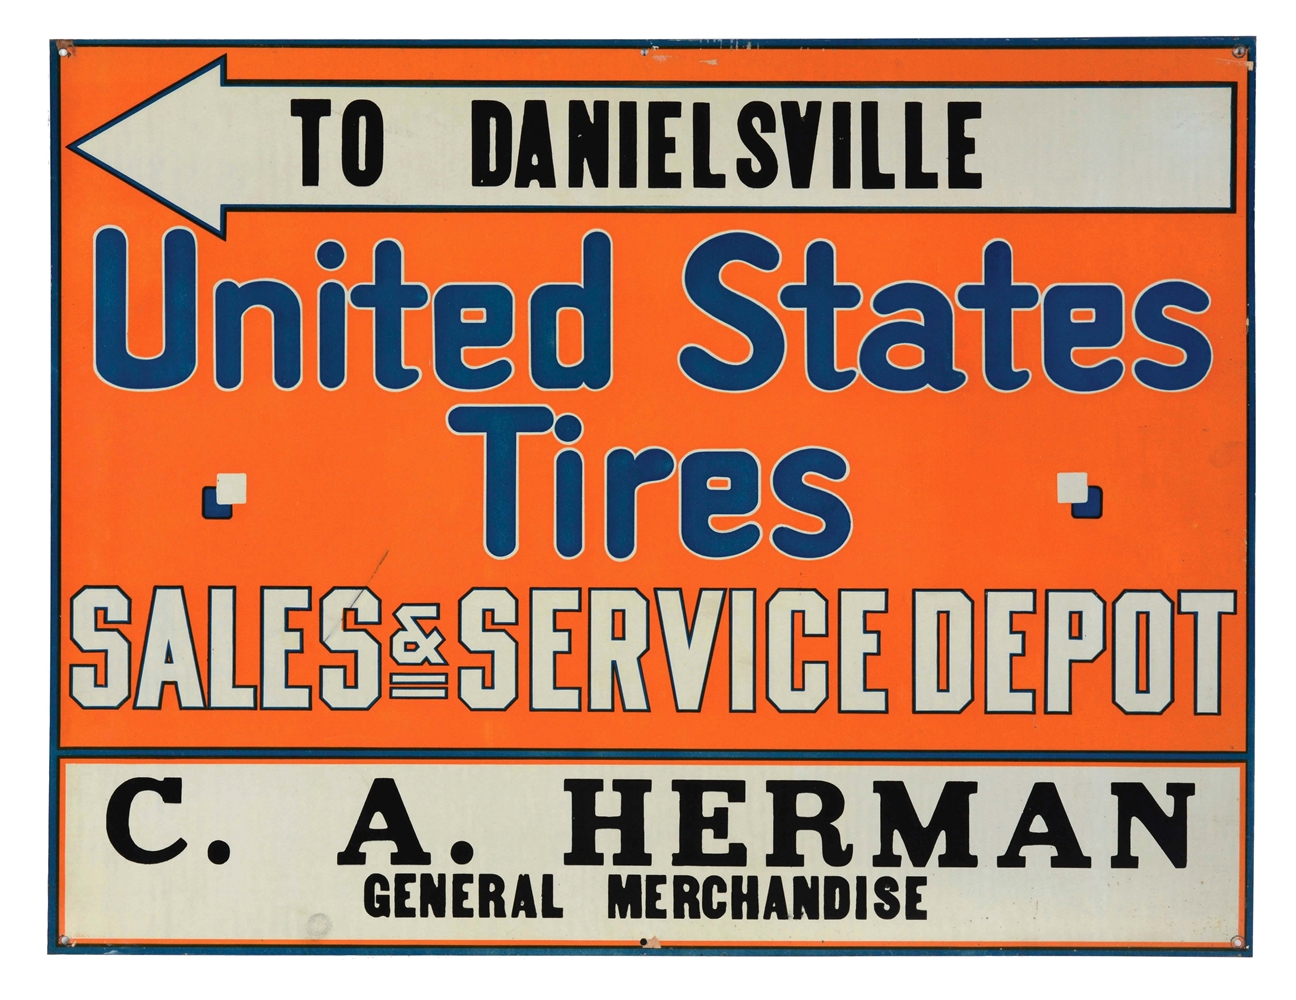 U.S. Tires Sales & Service Depot Tin Tacker Sign.